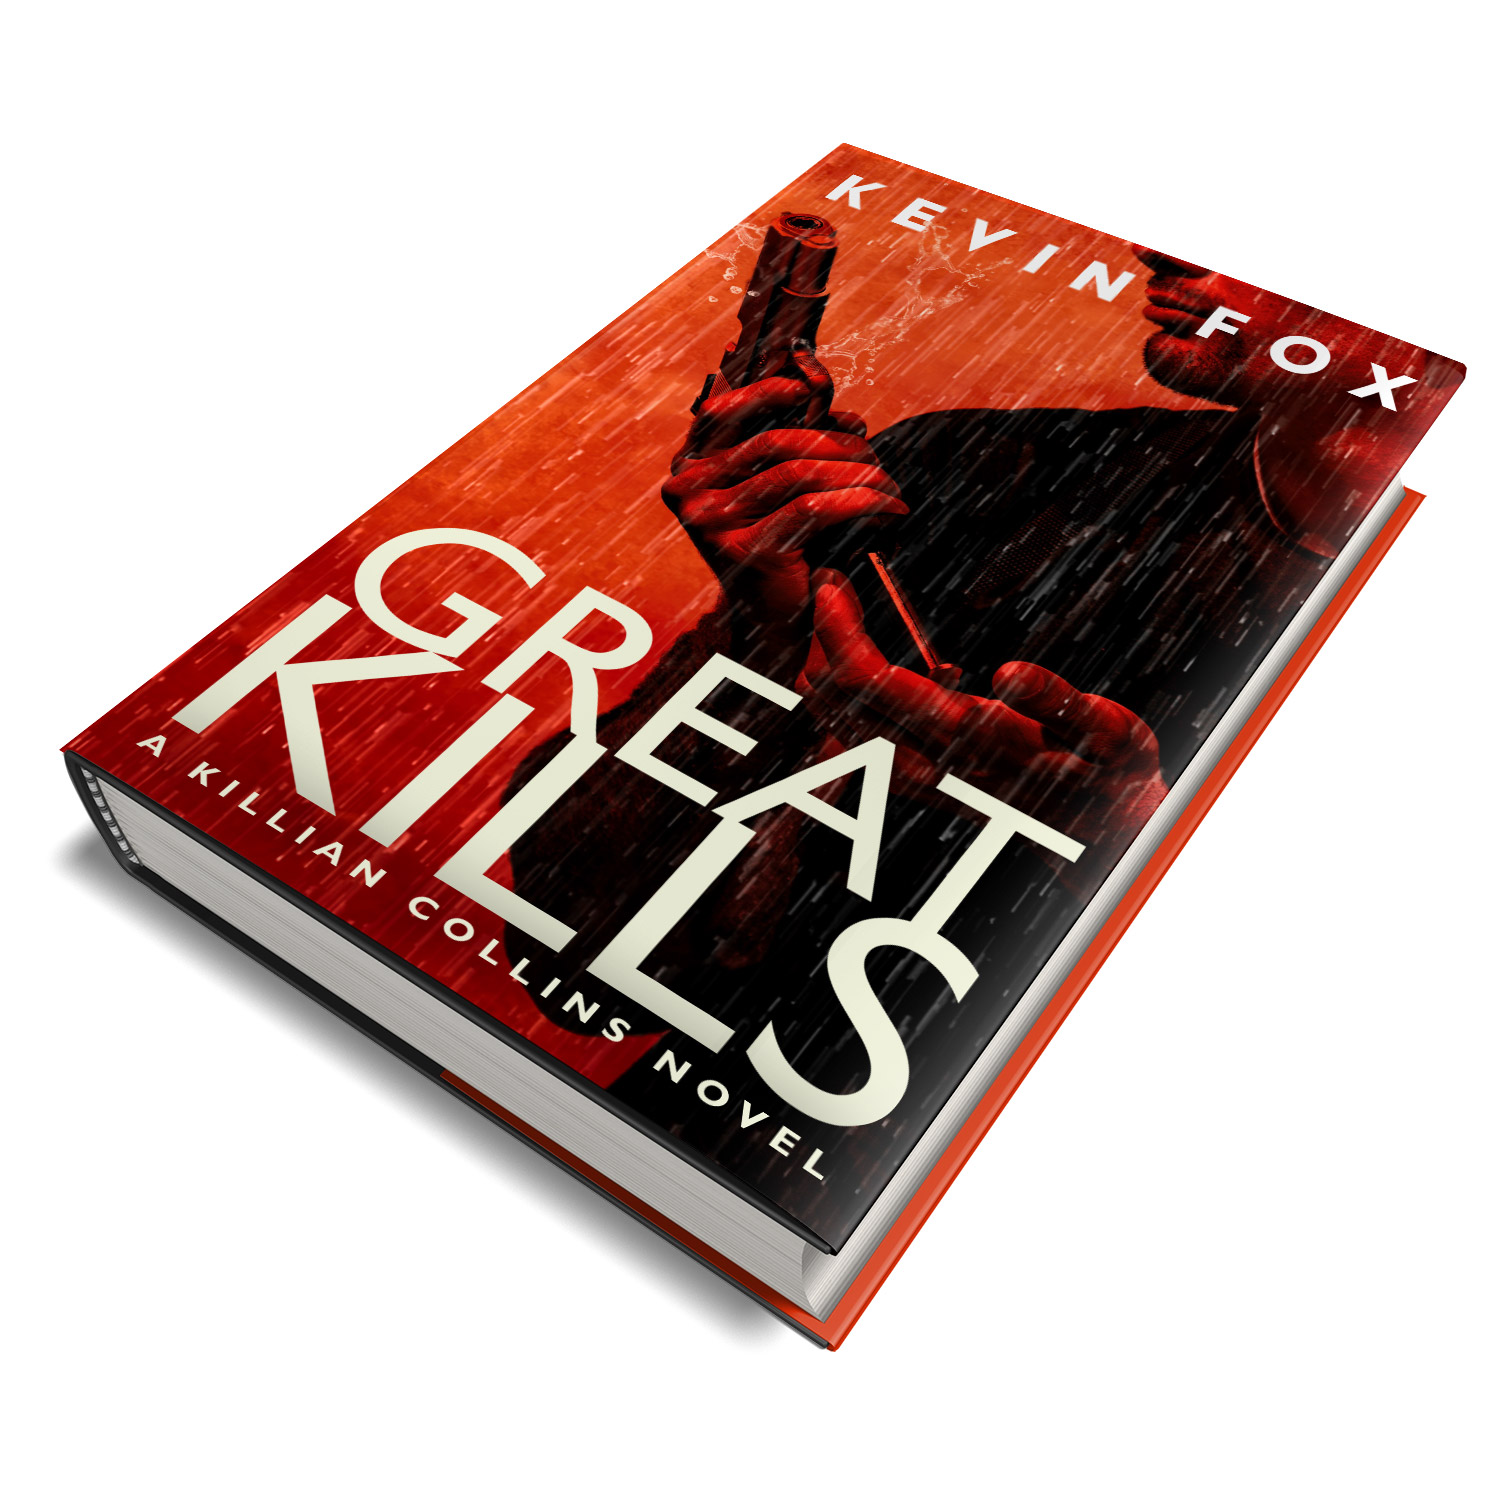 'Great Kills' is a great, gritty, character-led thriller. The author is Kevin Fox. The book cover design and interior formatting are by Mark Thomas. To learn more about what Mark could do for your book, please visit coverness.com.